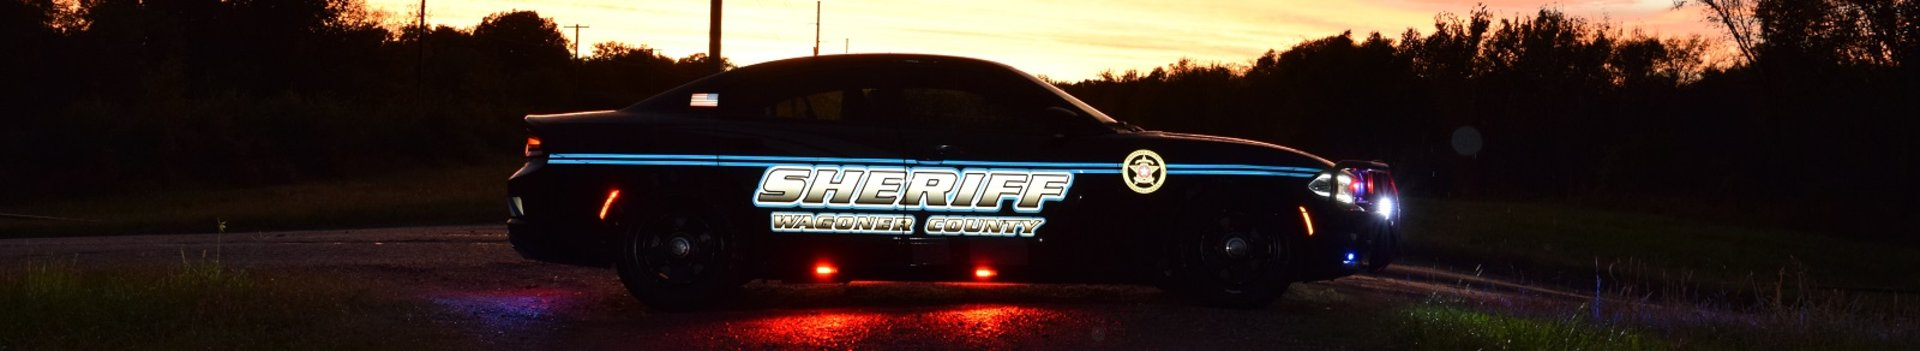 Wagoner County Sheriff's Office patrol car sideview at night